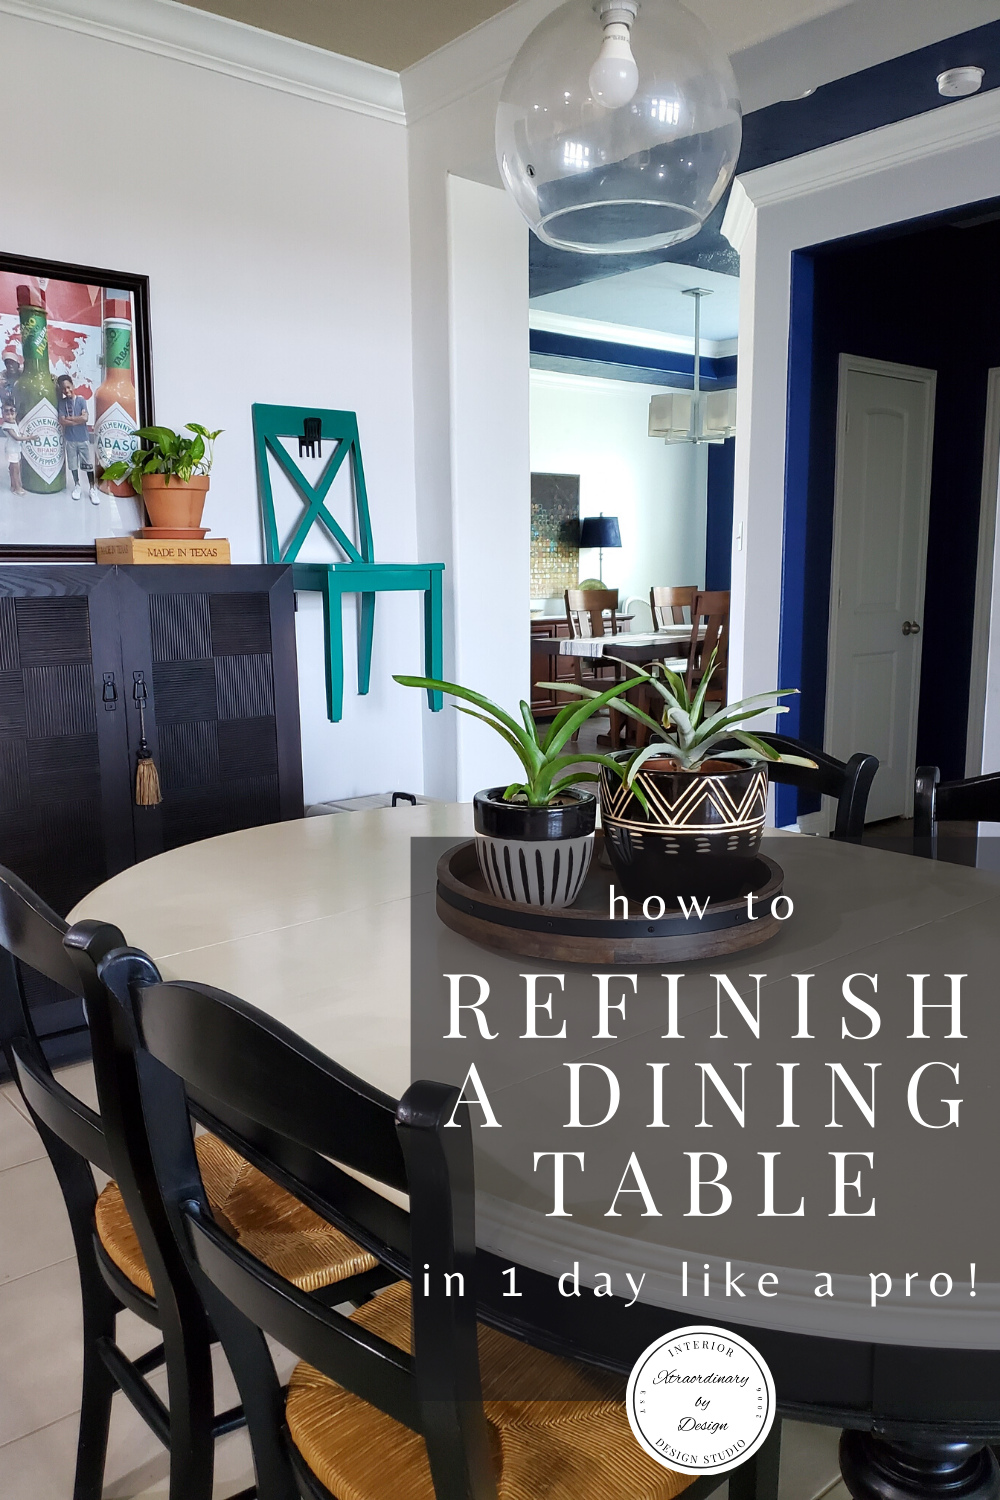 How To Refinish A Dining Table In 1 Day In 2020 Dining Room